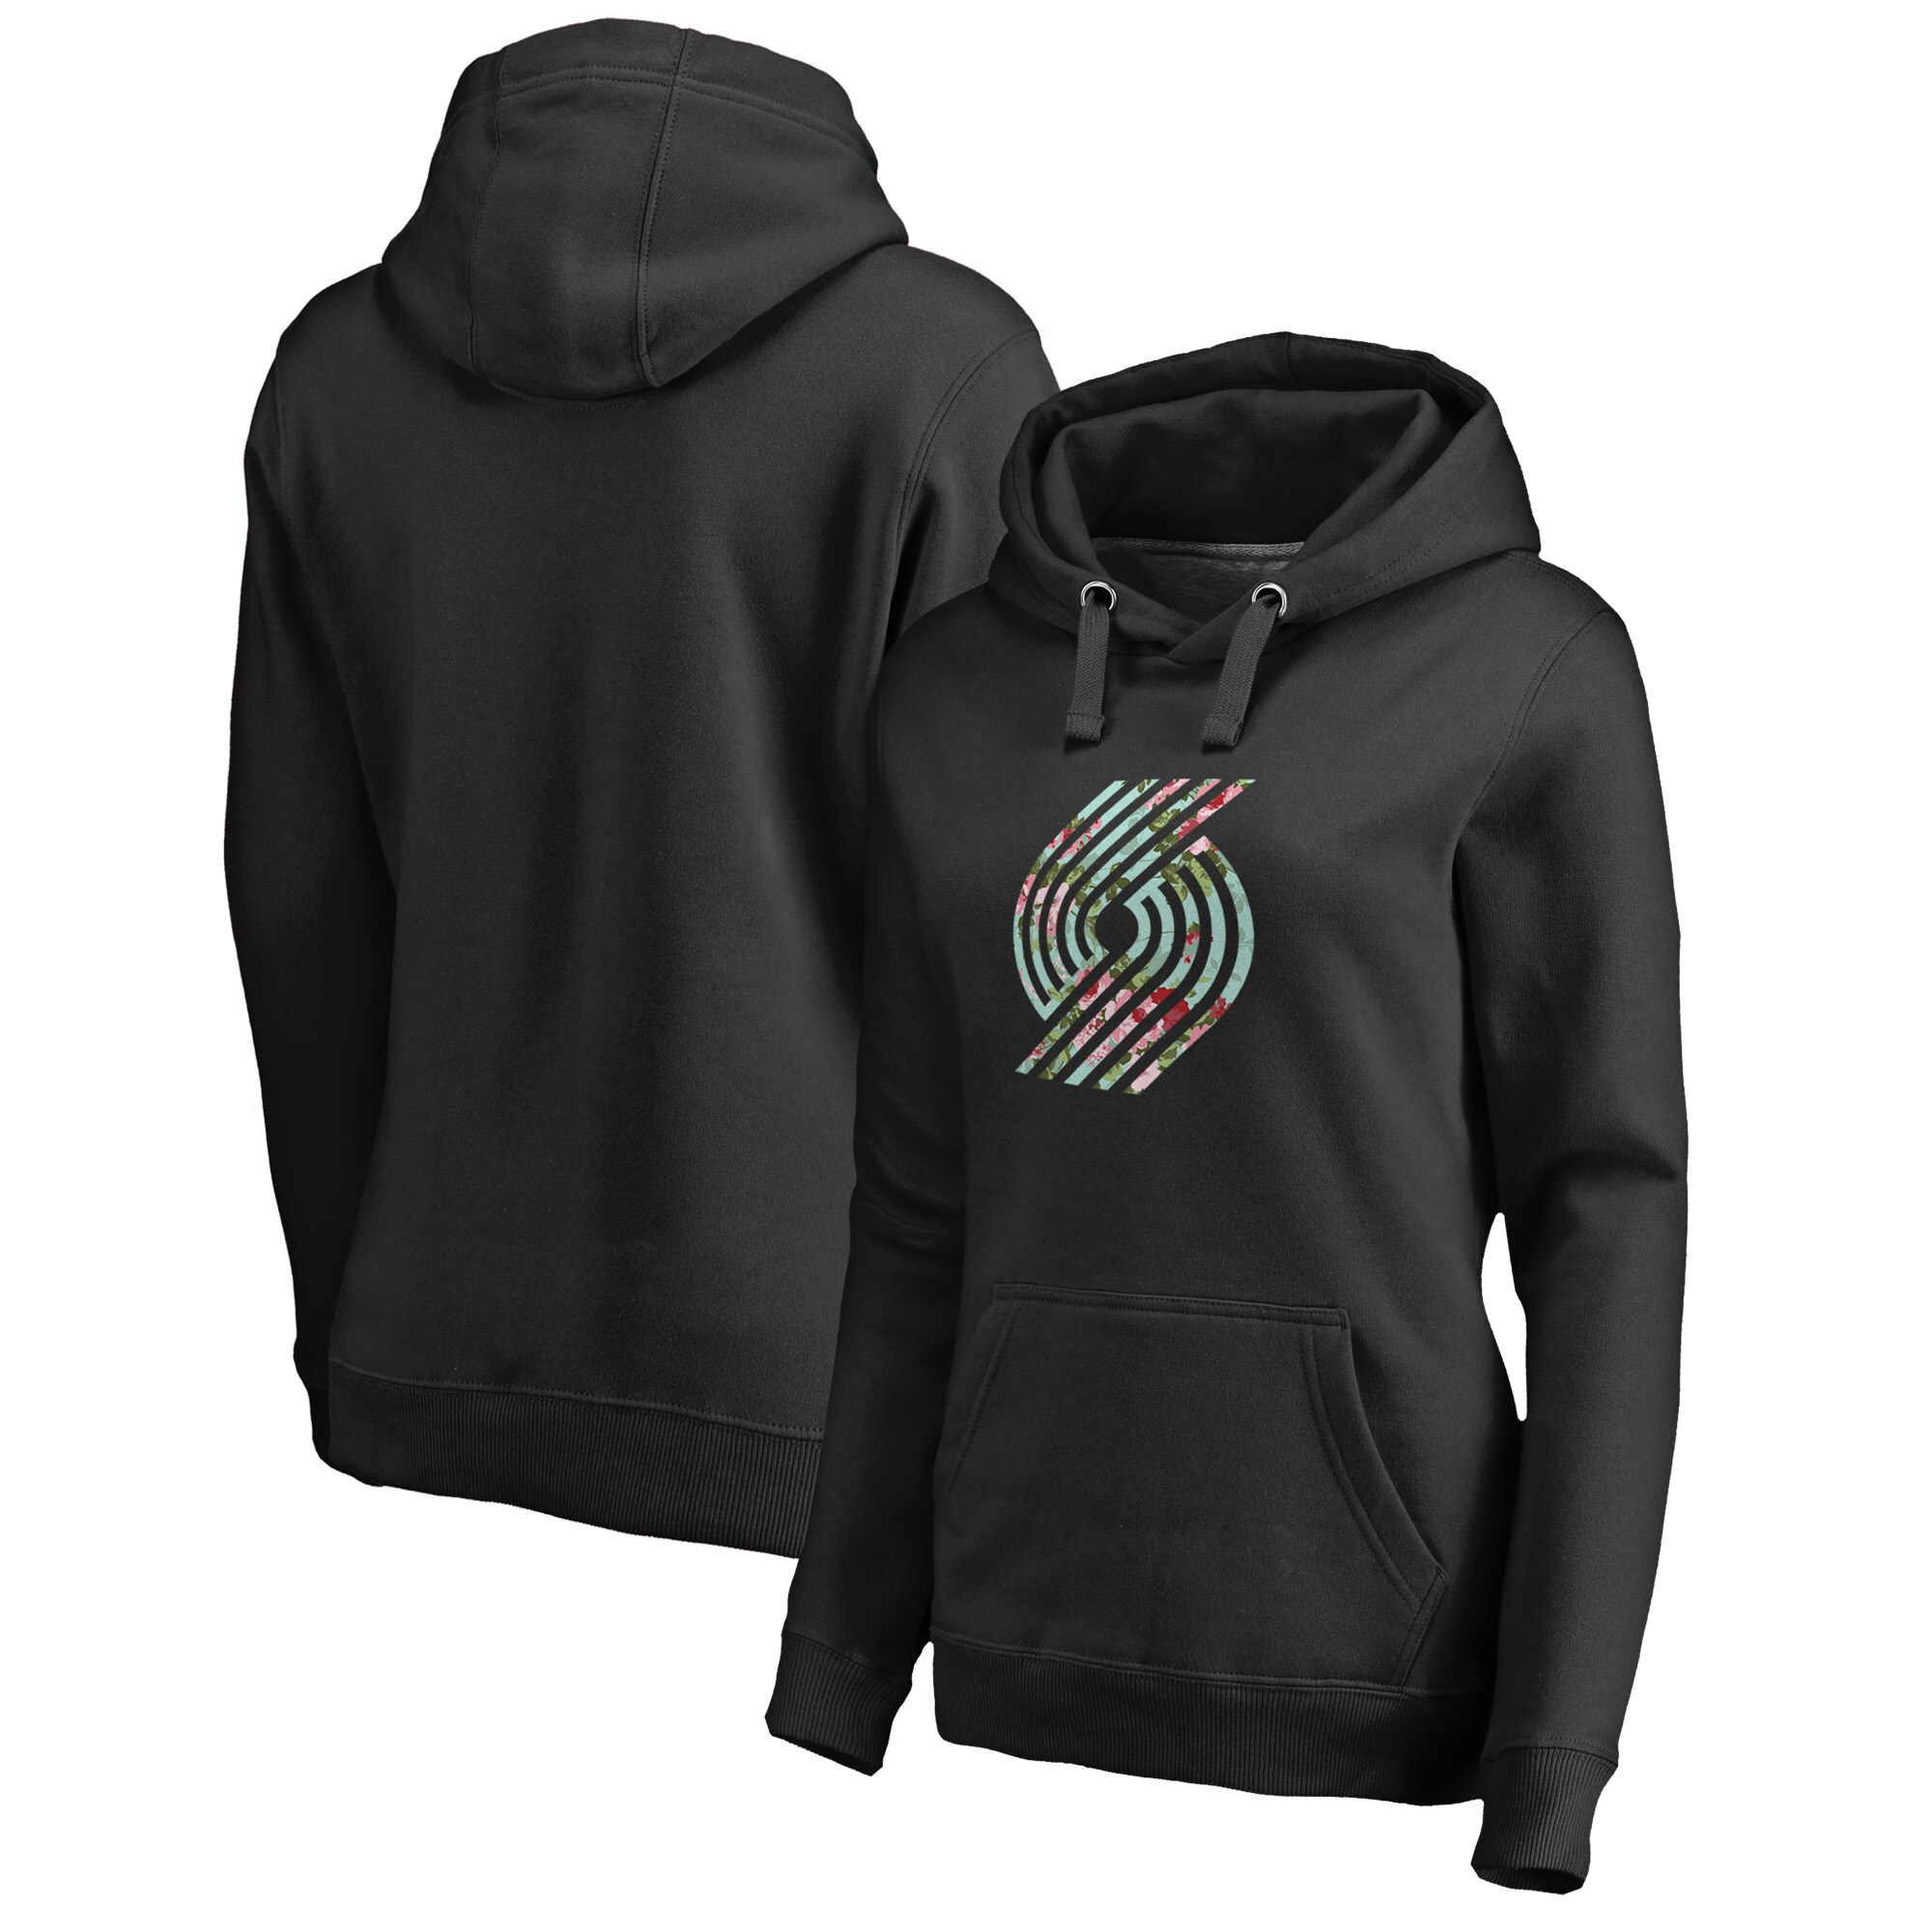 Portland Trail Blazers Fanatics Branded Women's Lovely Pullover Hoodie - Black